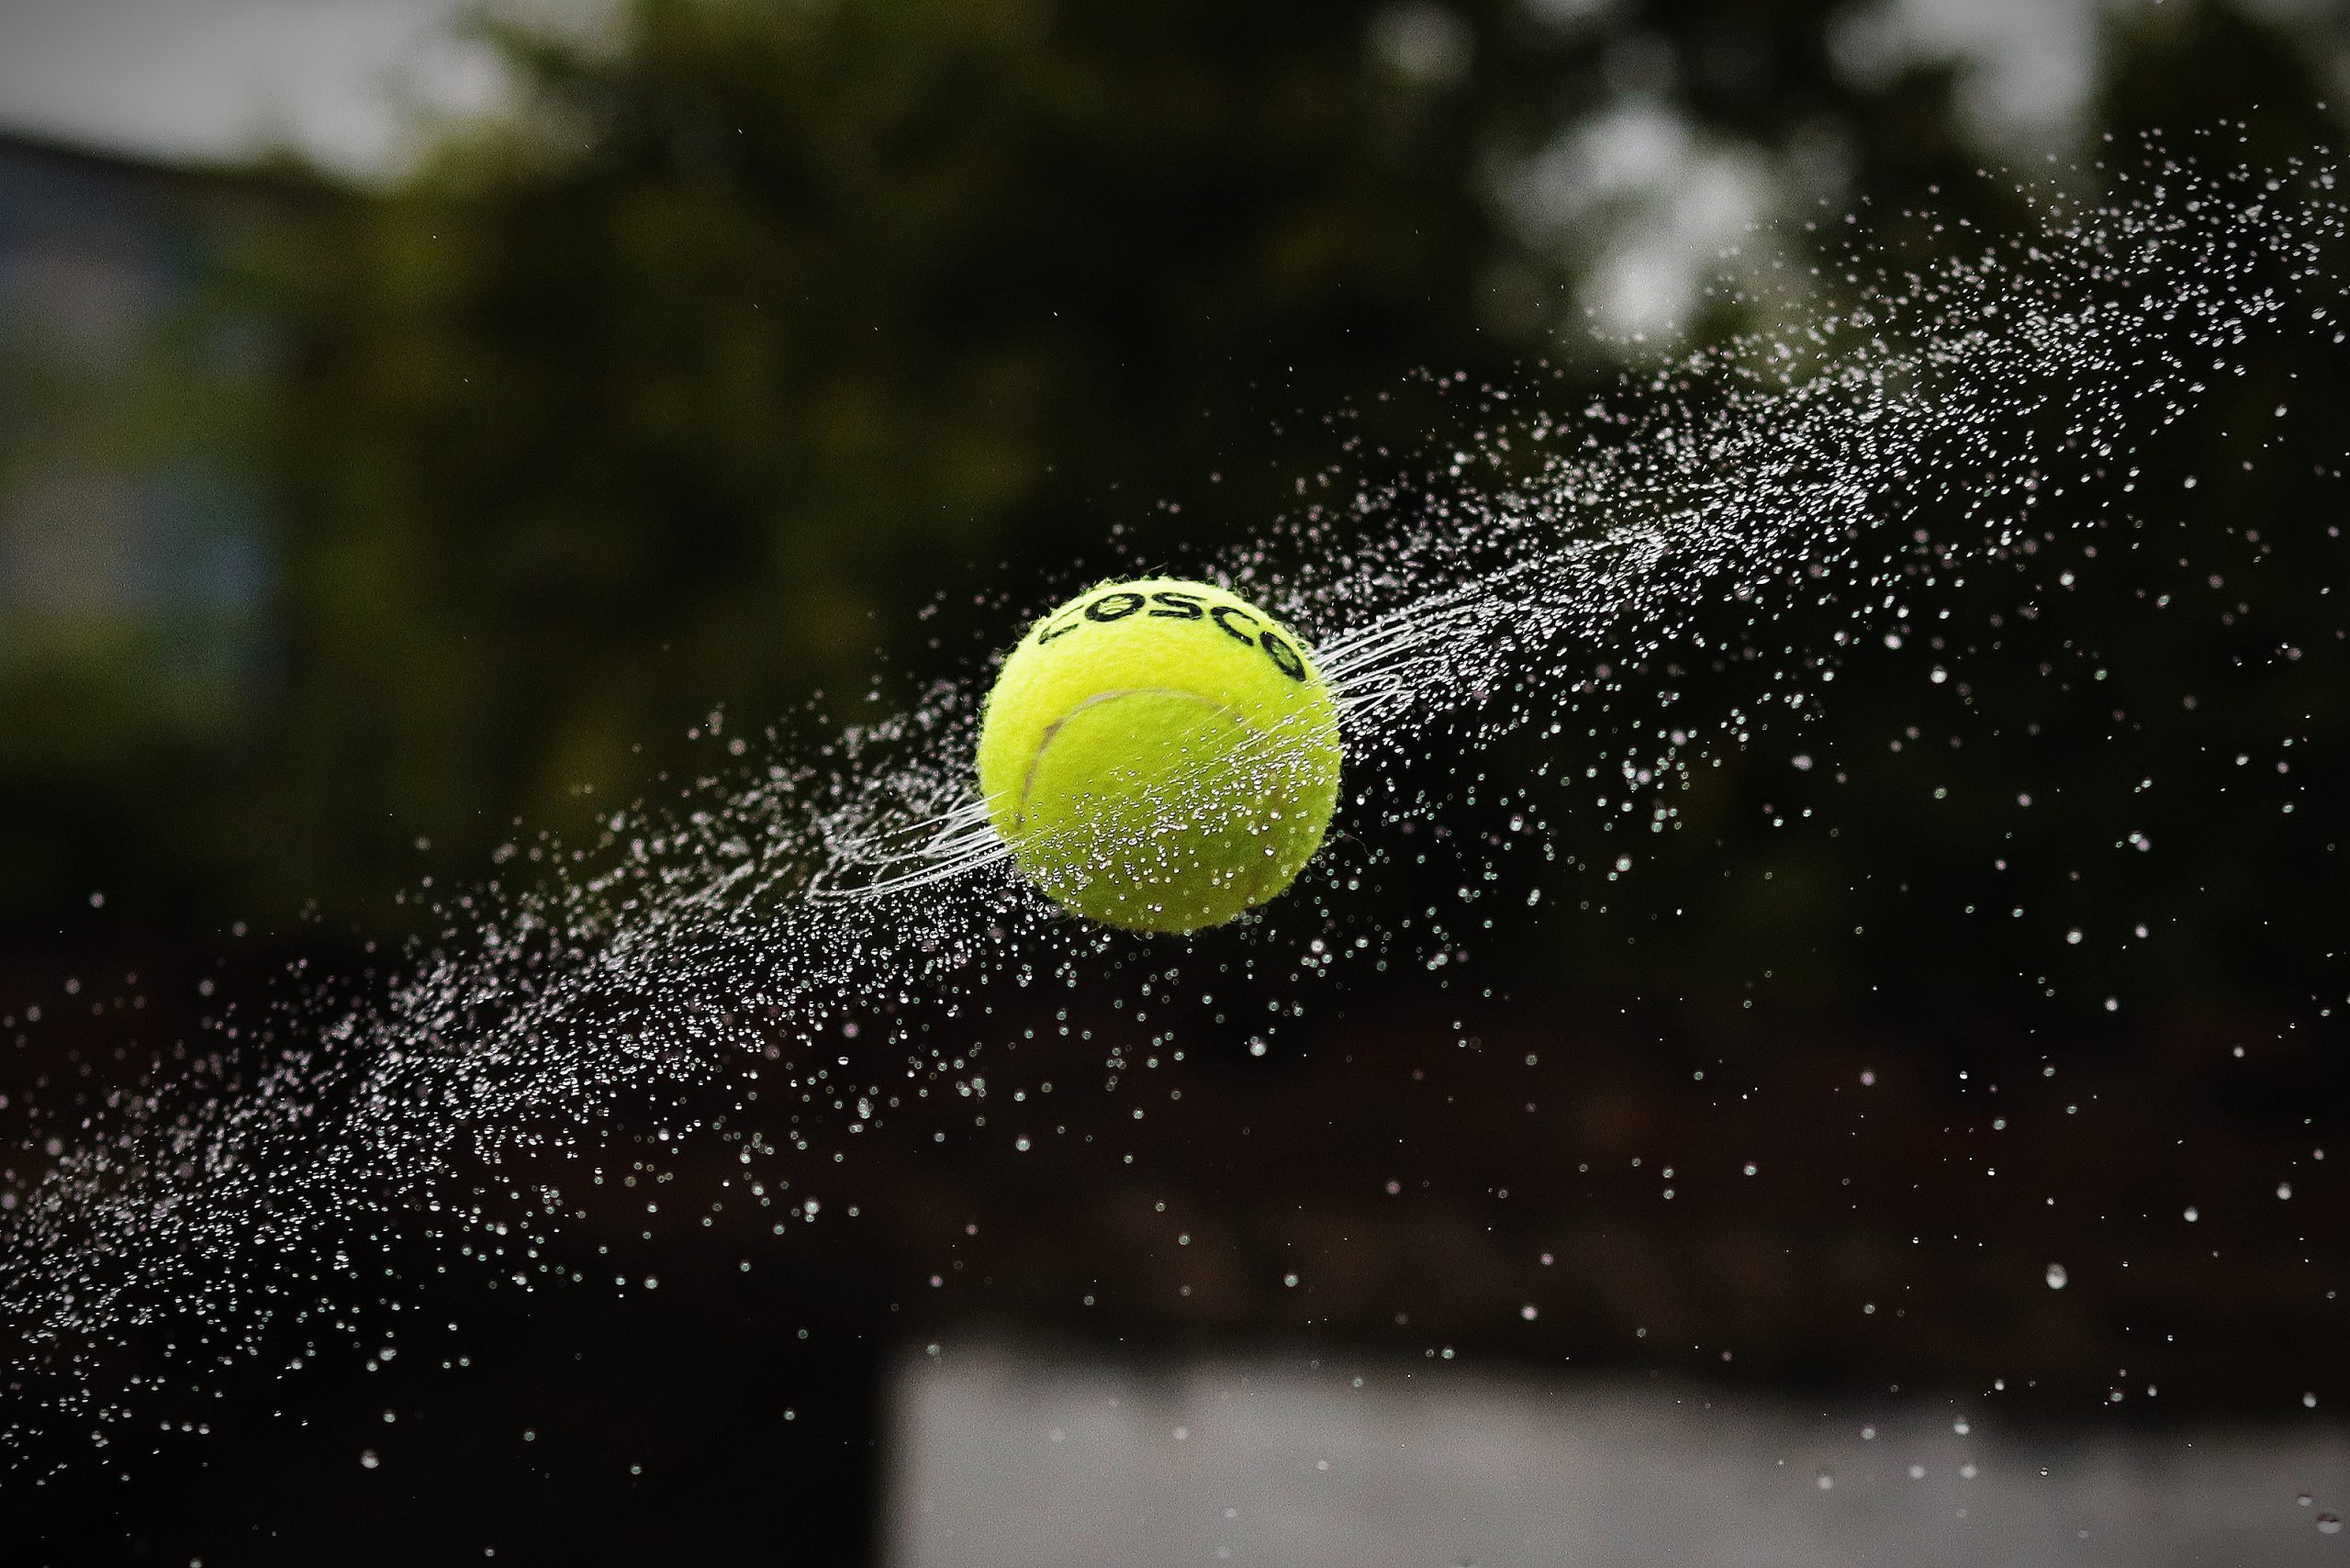 A tennis ball smashed